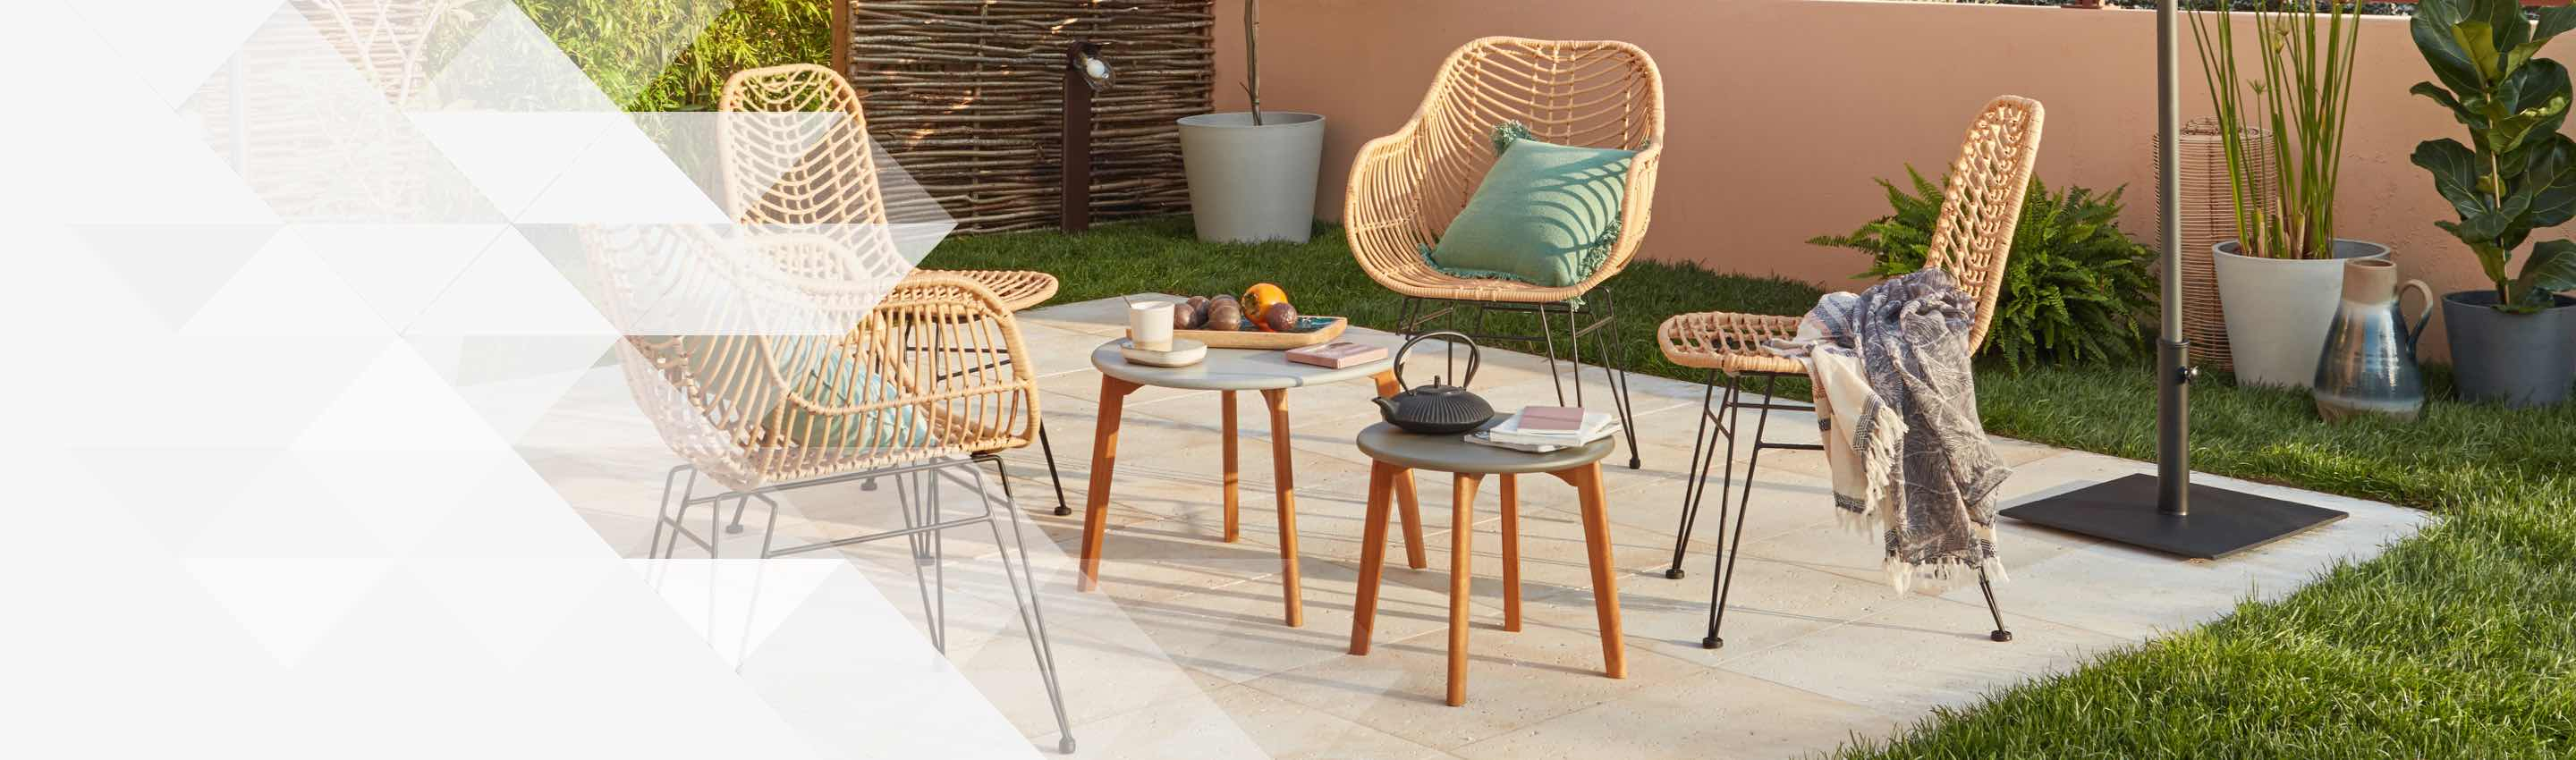 Housse De Protection Salon De Jardin Carrefour Salon De Jardin Table Et Chaise Mobilier De Jardin Leroy Merlin